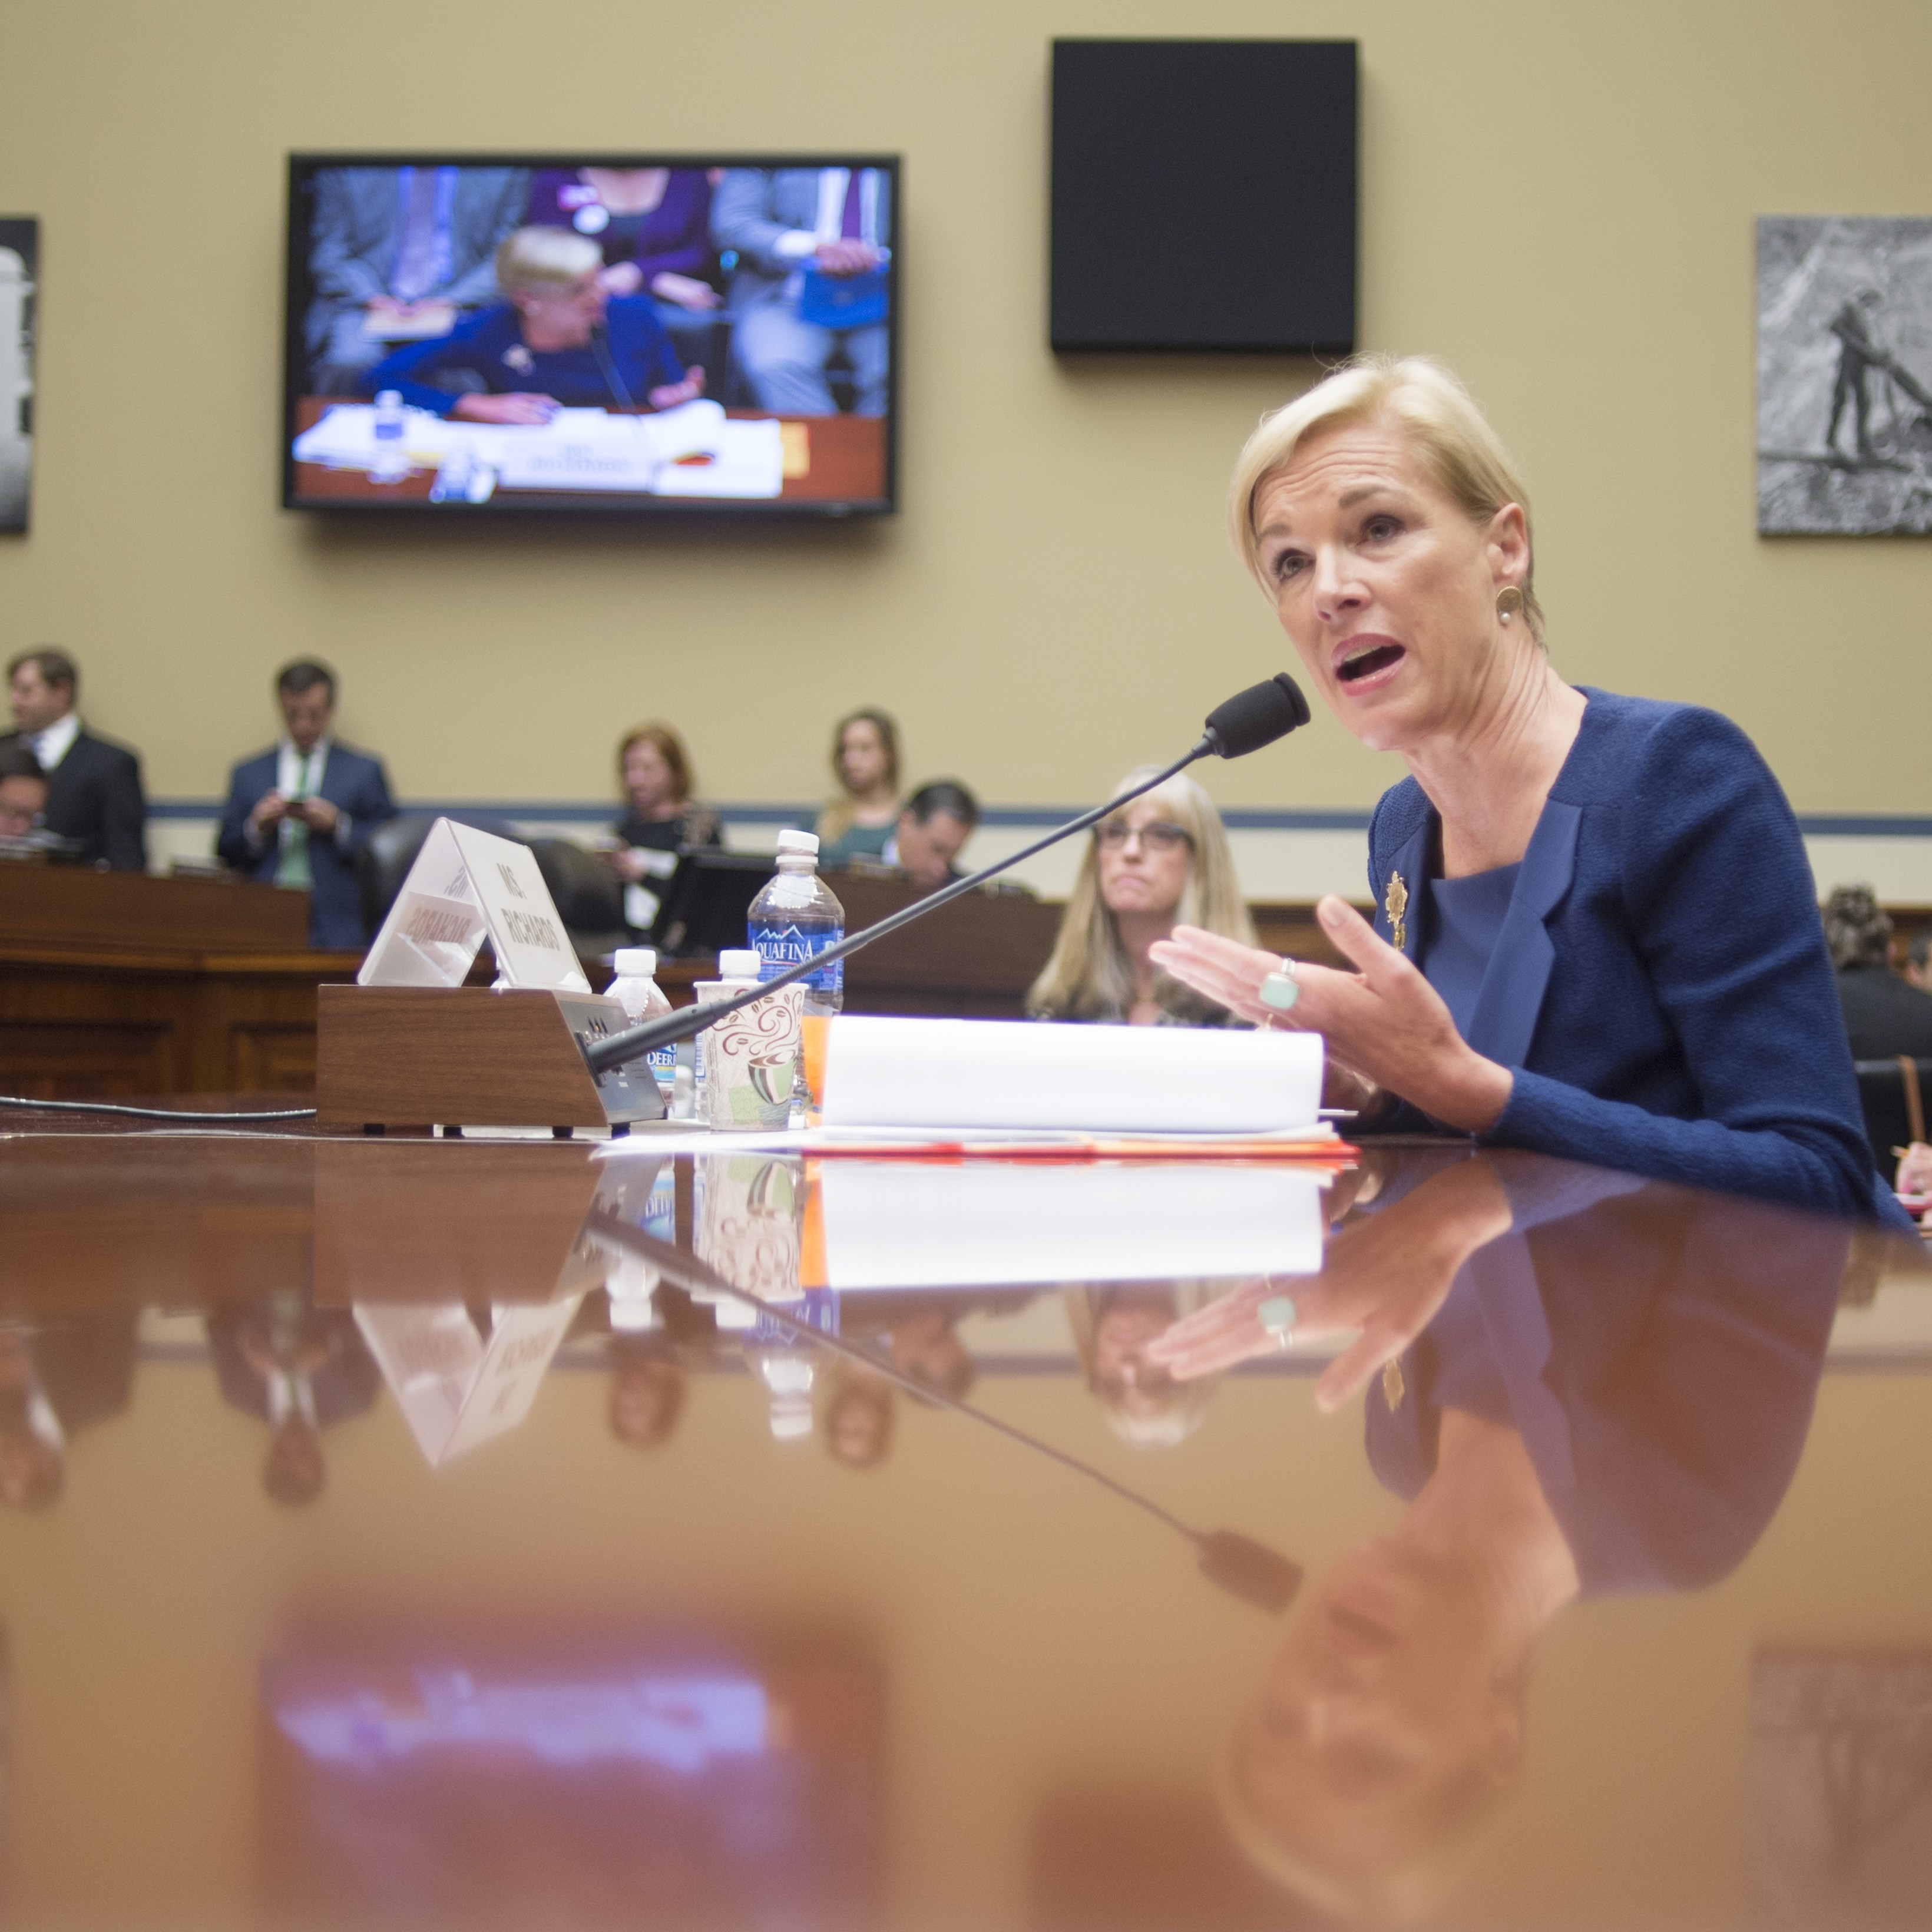 Witness Accounts Conflict With Planned Parenthood: Senate Votes To Defund Planned Parenthood, Obama Promises